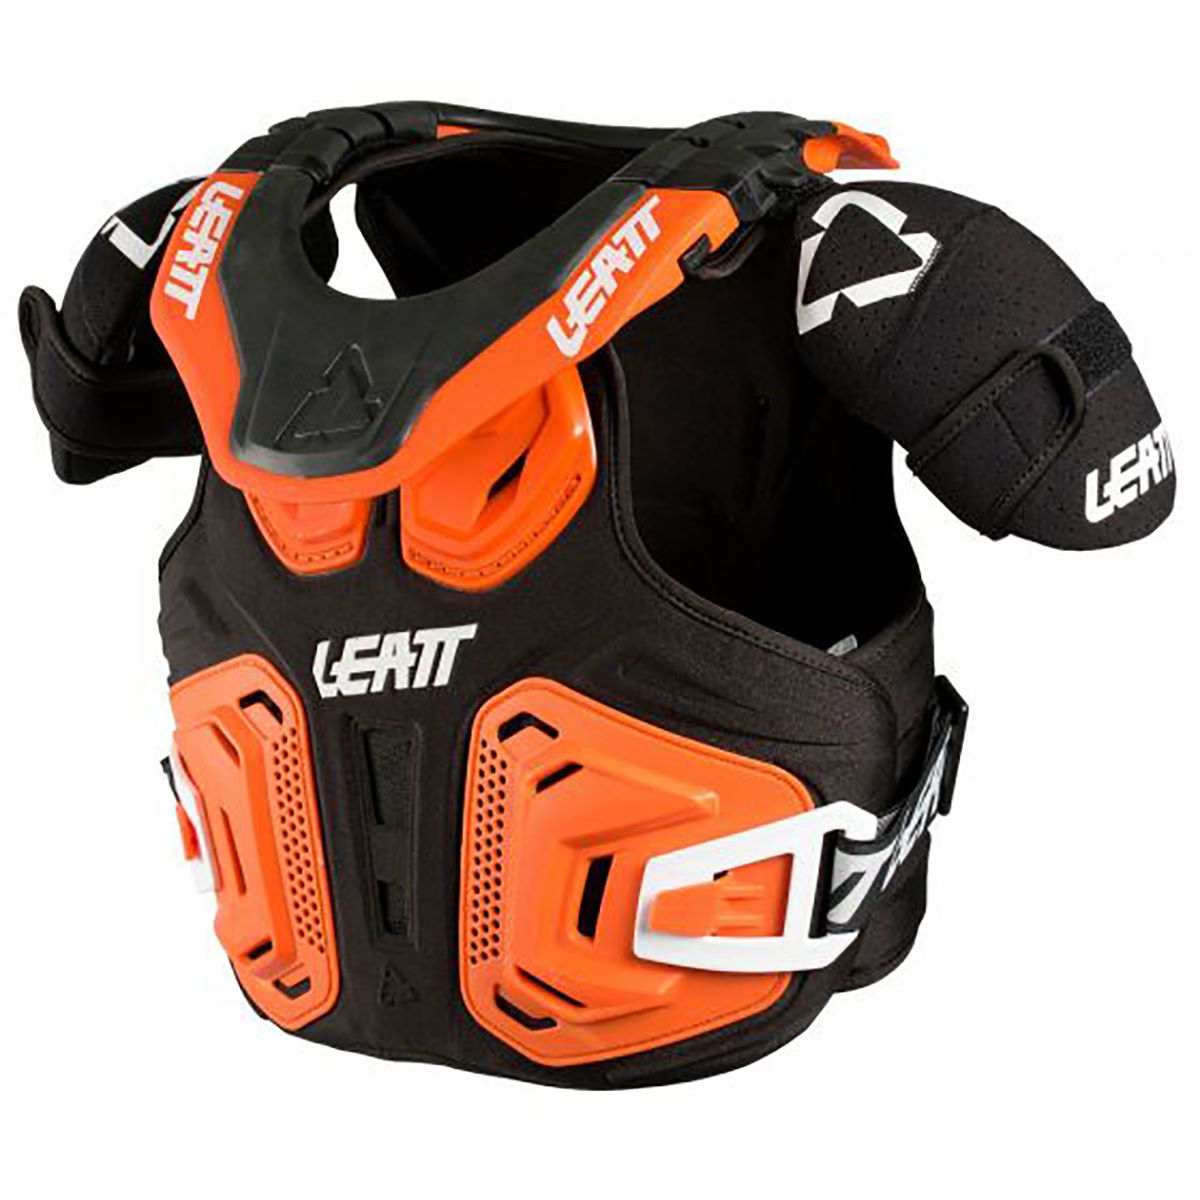 Leatt Leatt Fusion Vest 2.0 Junior   Body Protectors